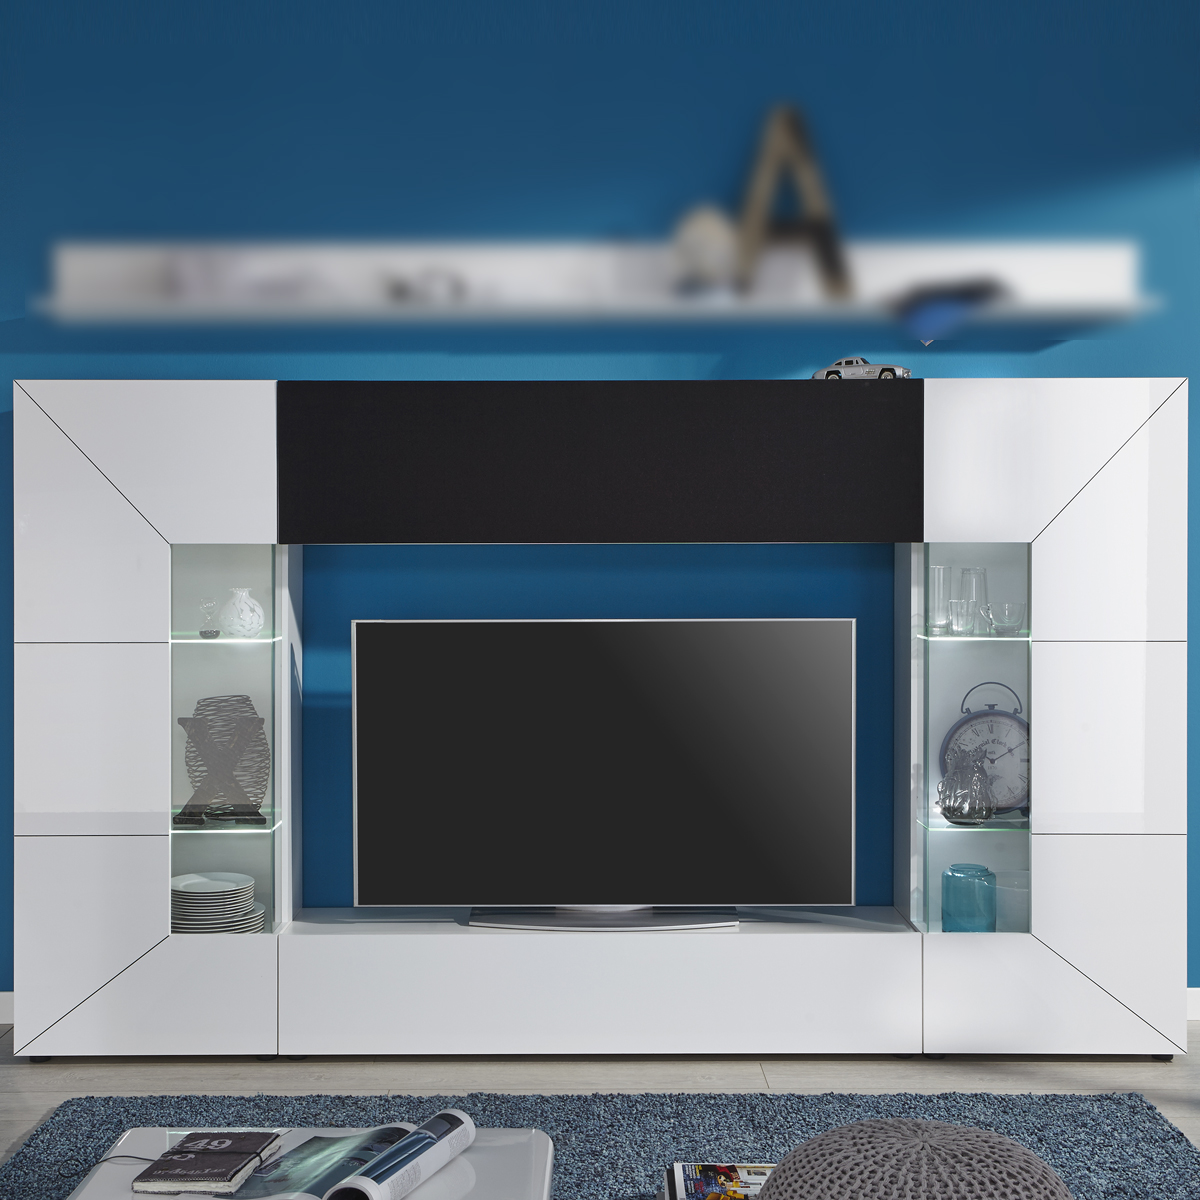 wohnwand tv medienwand anbauwand scaleo z4 wei hochglanz inkl led akustiksoff ebay. Black Bedroom Furniture Sets. Home Design Ideas